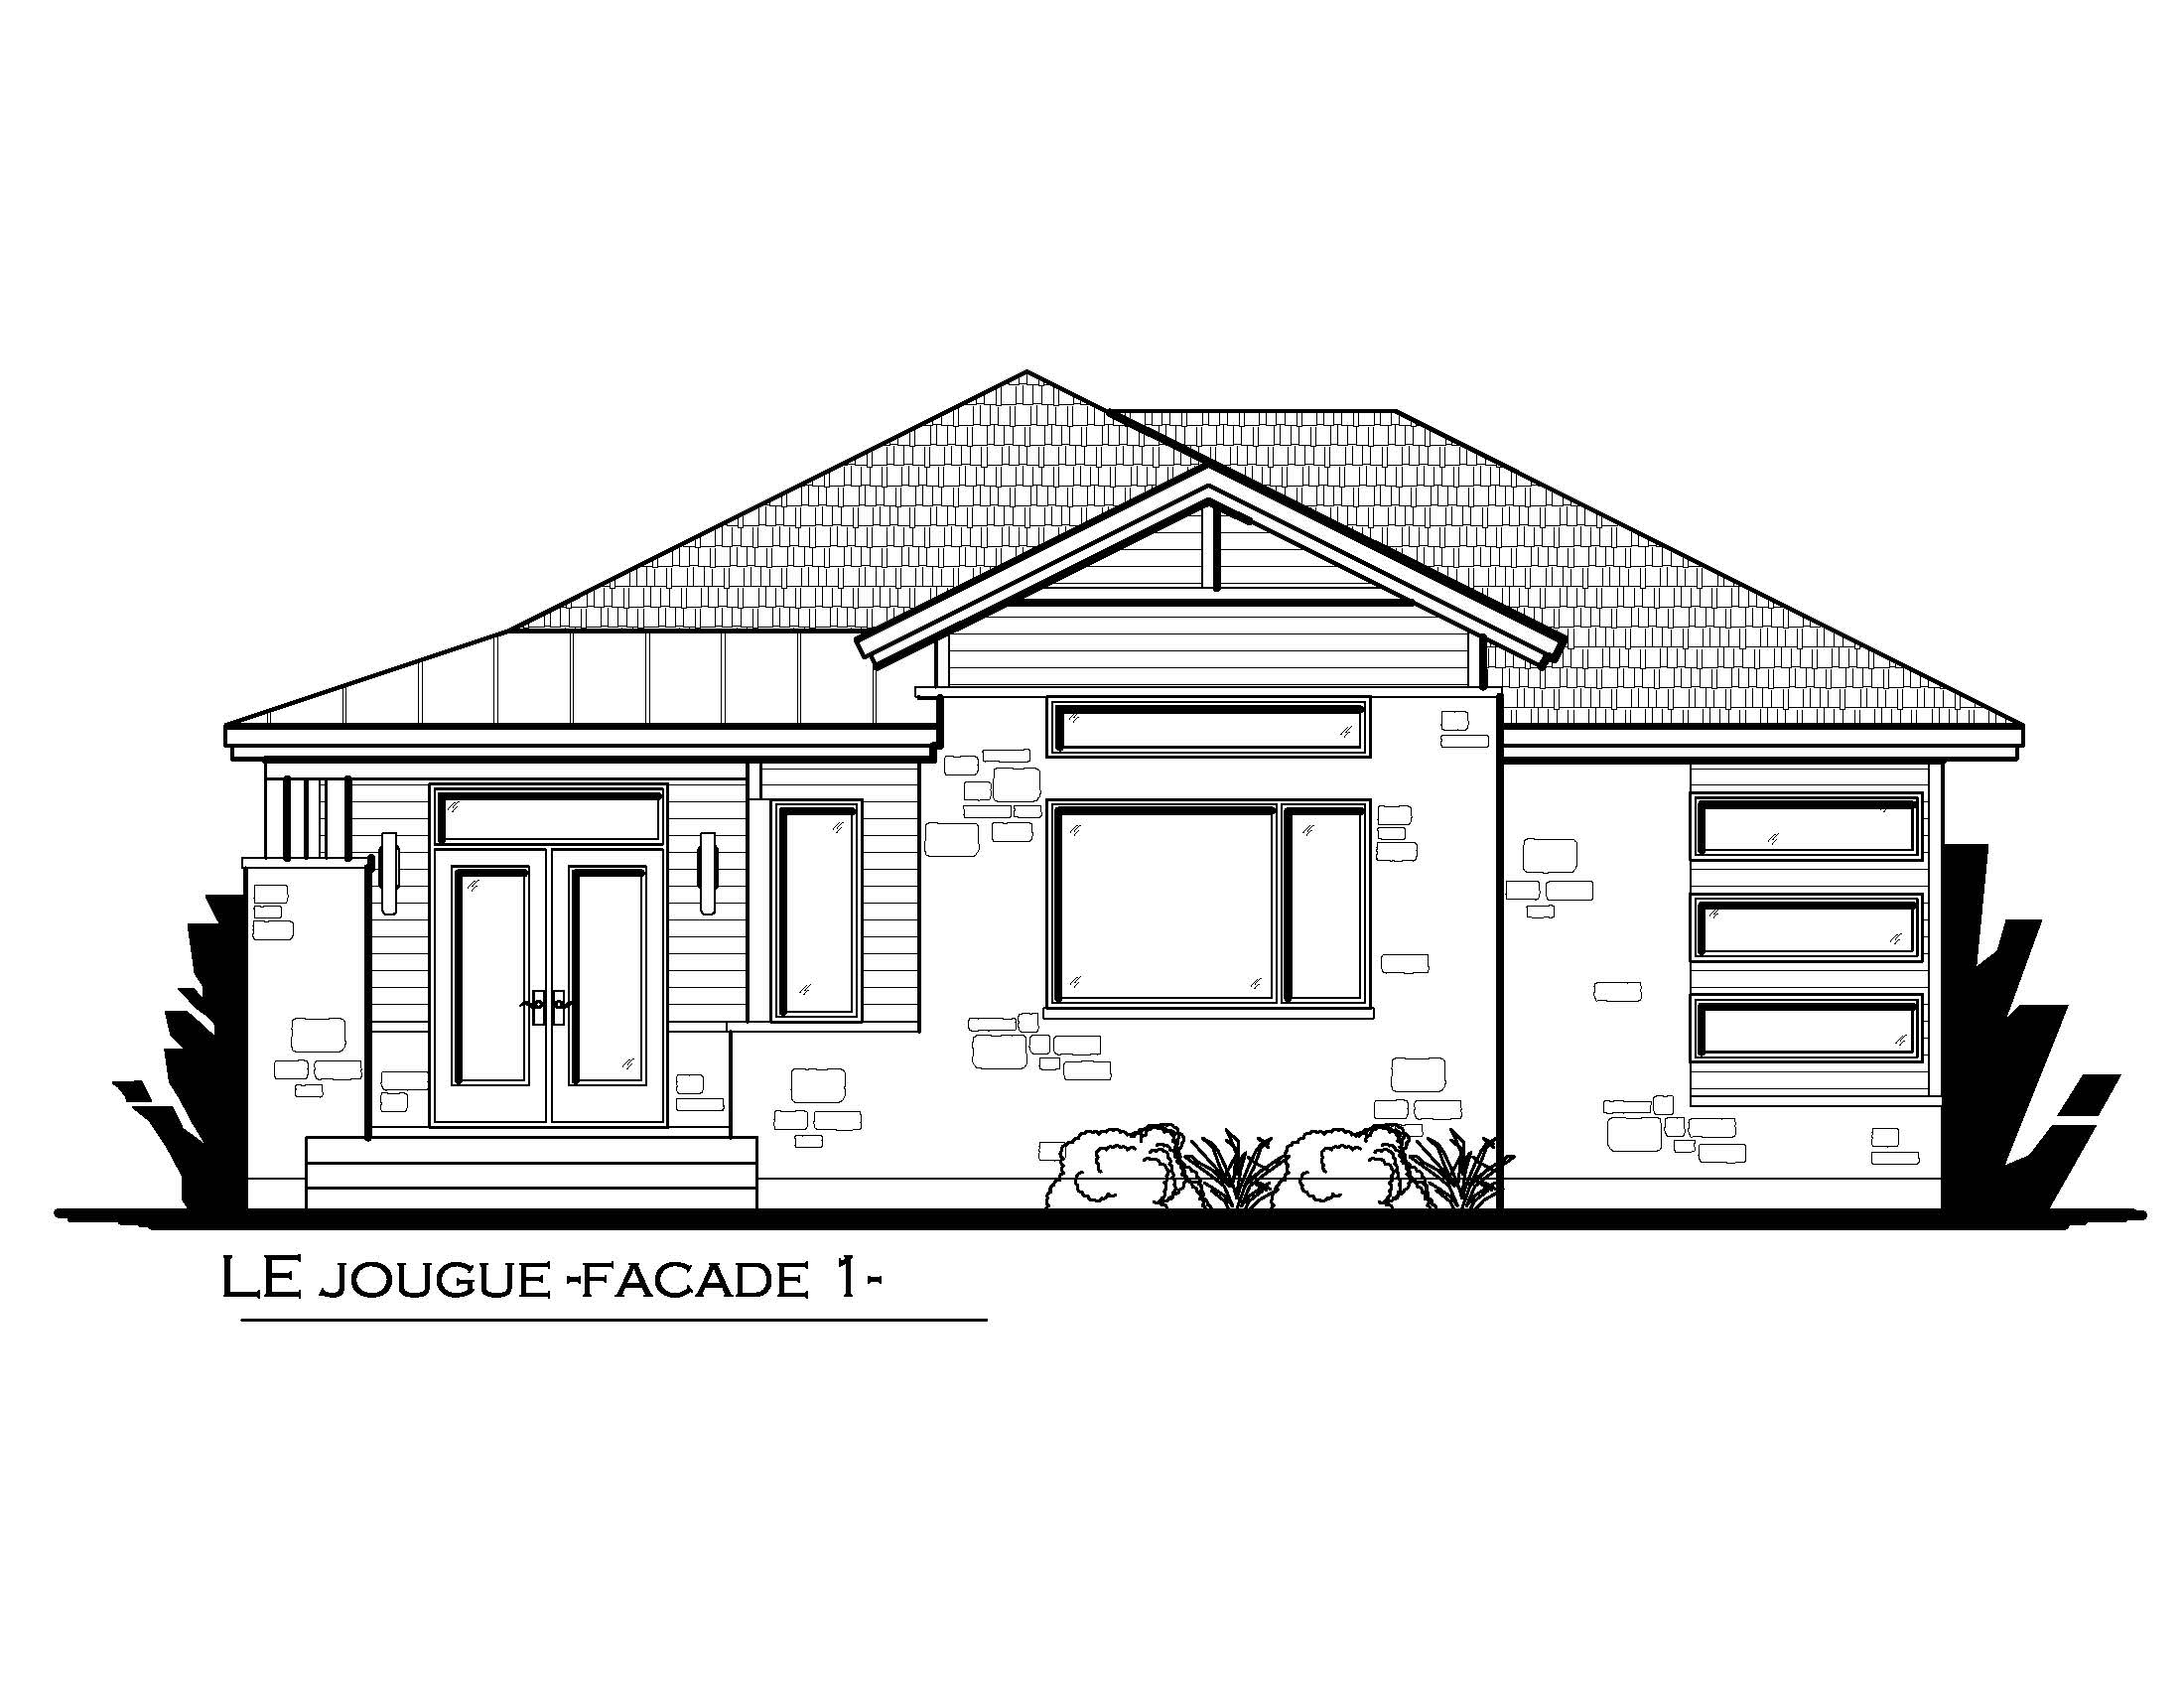 Facade option 1 Le Jougue